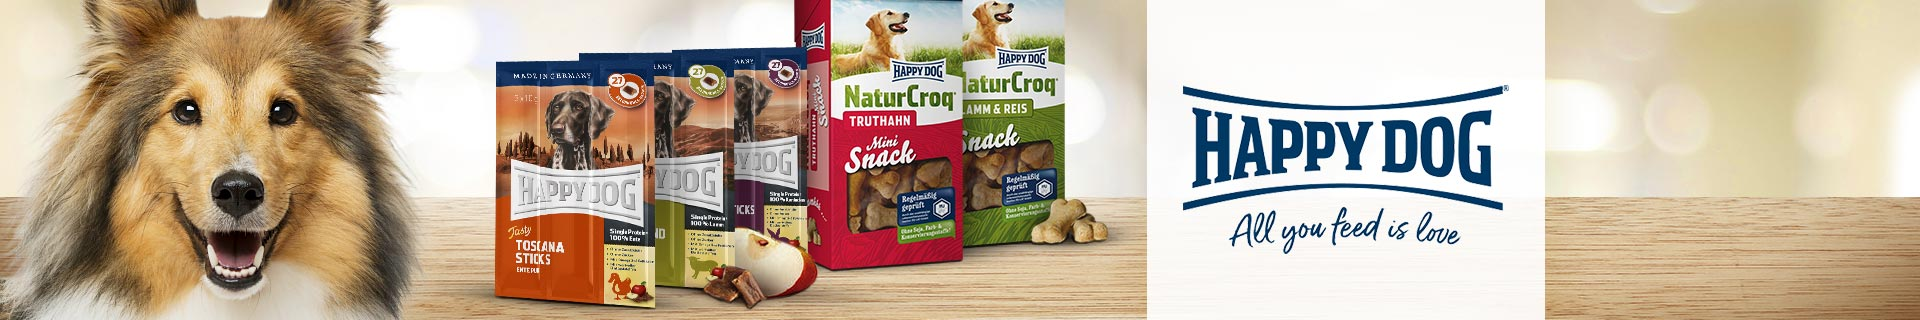 HappyDog Snacks